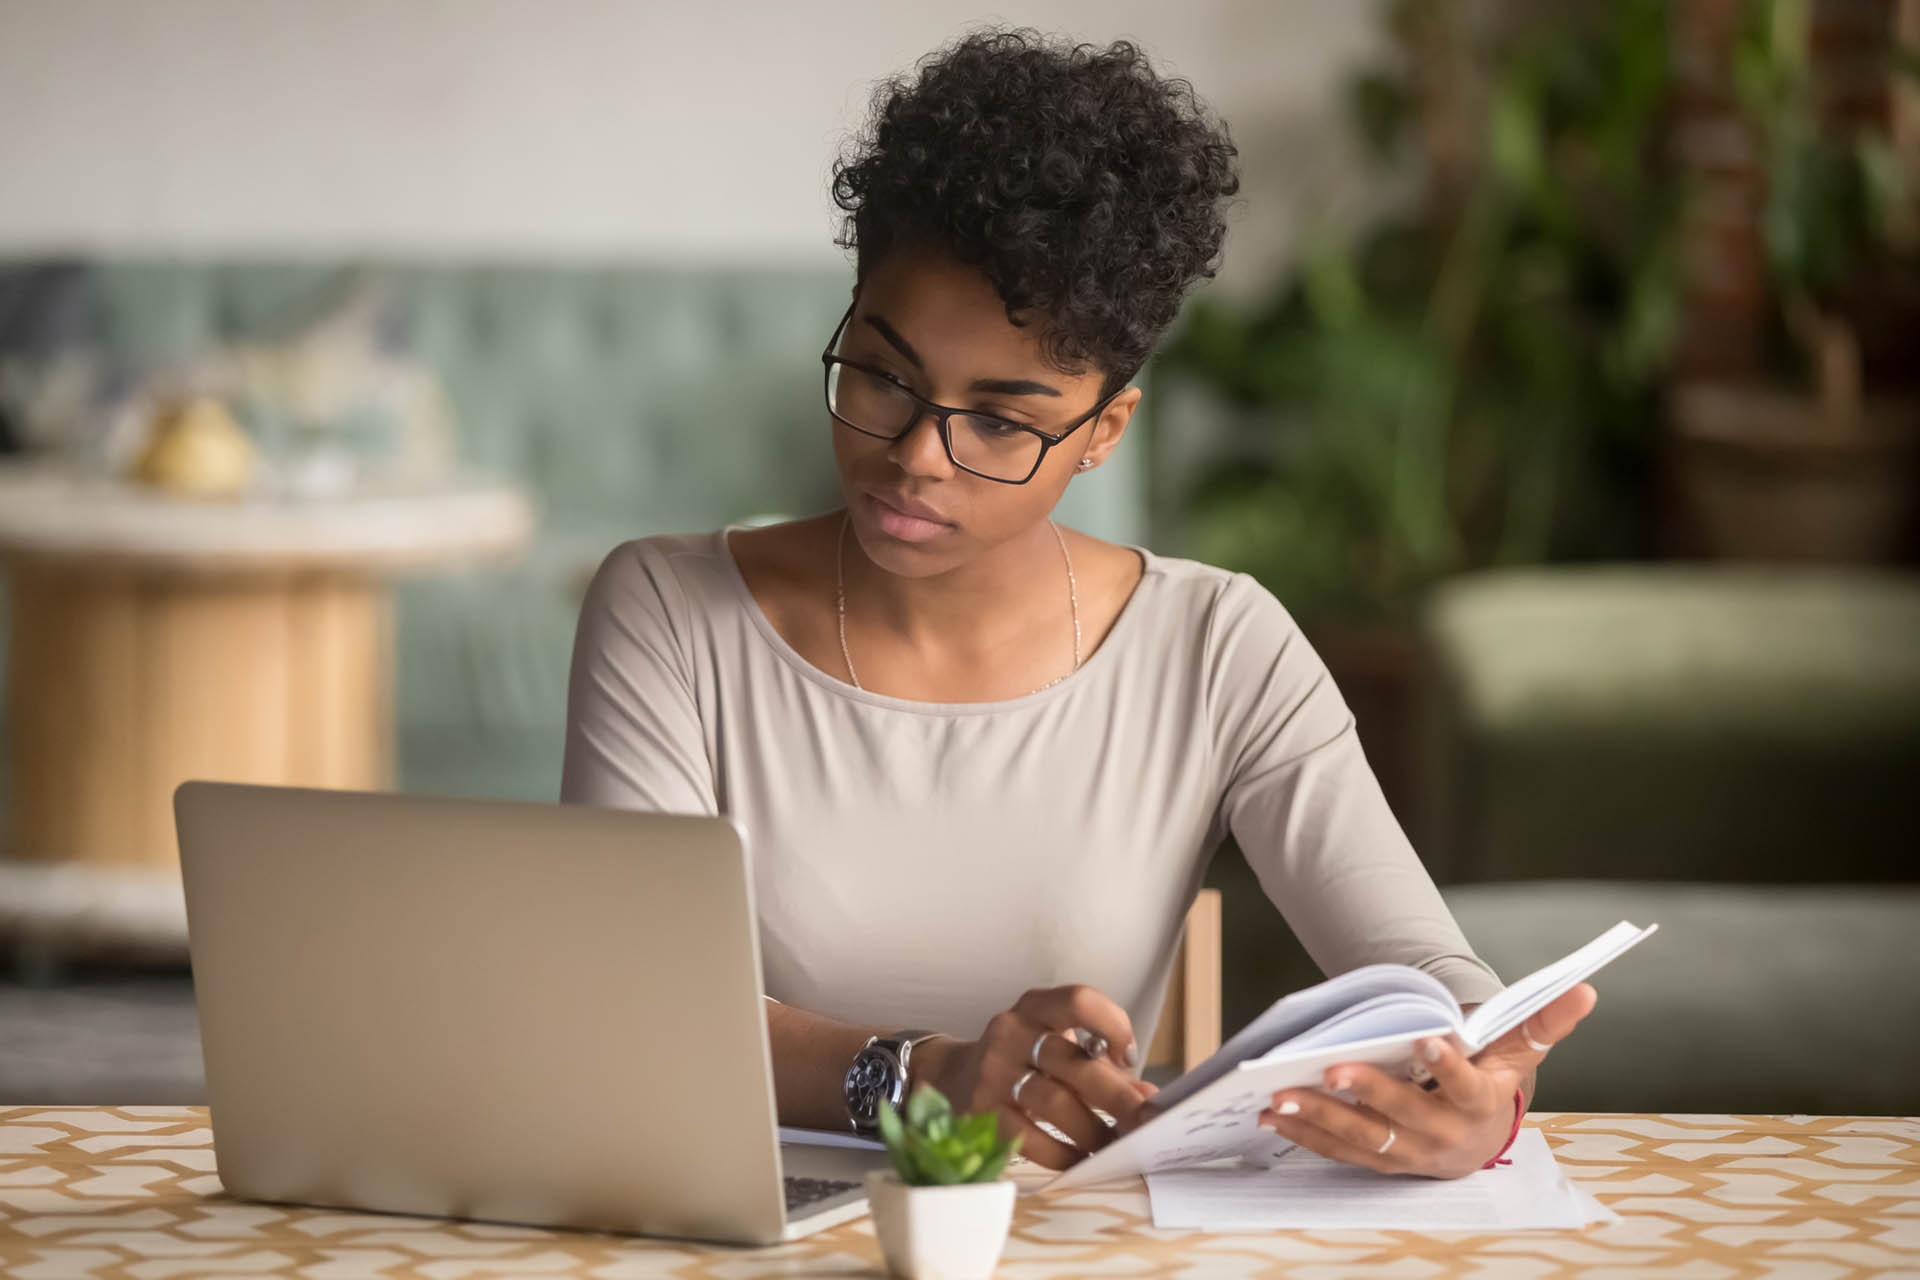 Focused young african american businesswoman or student looking at laptop holding book learning, serious black woman working or studying with computer doing research or preparing for exam online